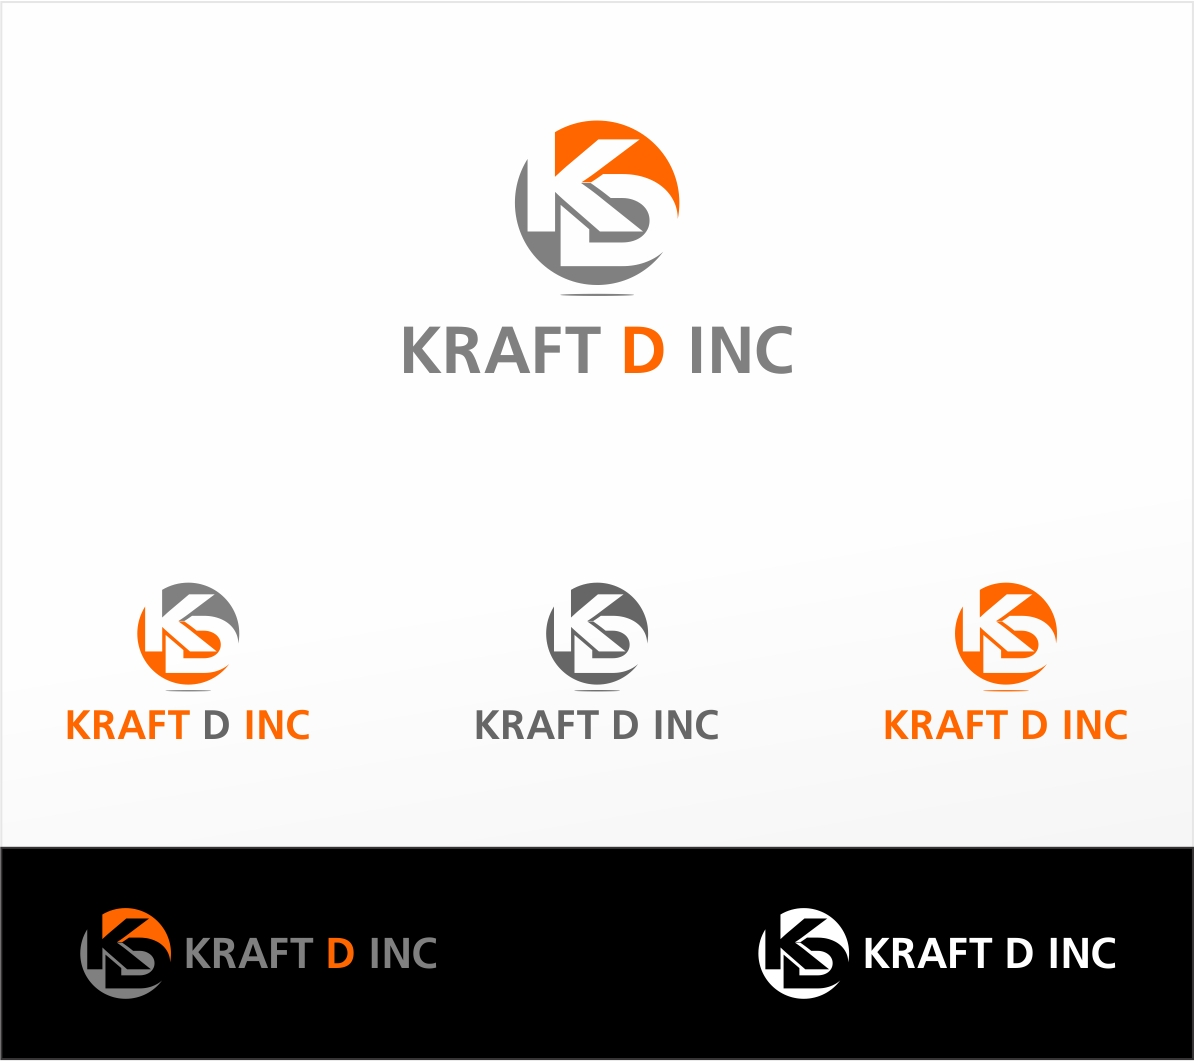 Logo Design by haidu - Entry No. 149 in the Logo Design Contest Unique Logo Design Wanted for Kraft D Inc.